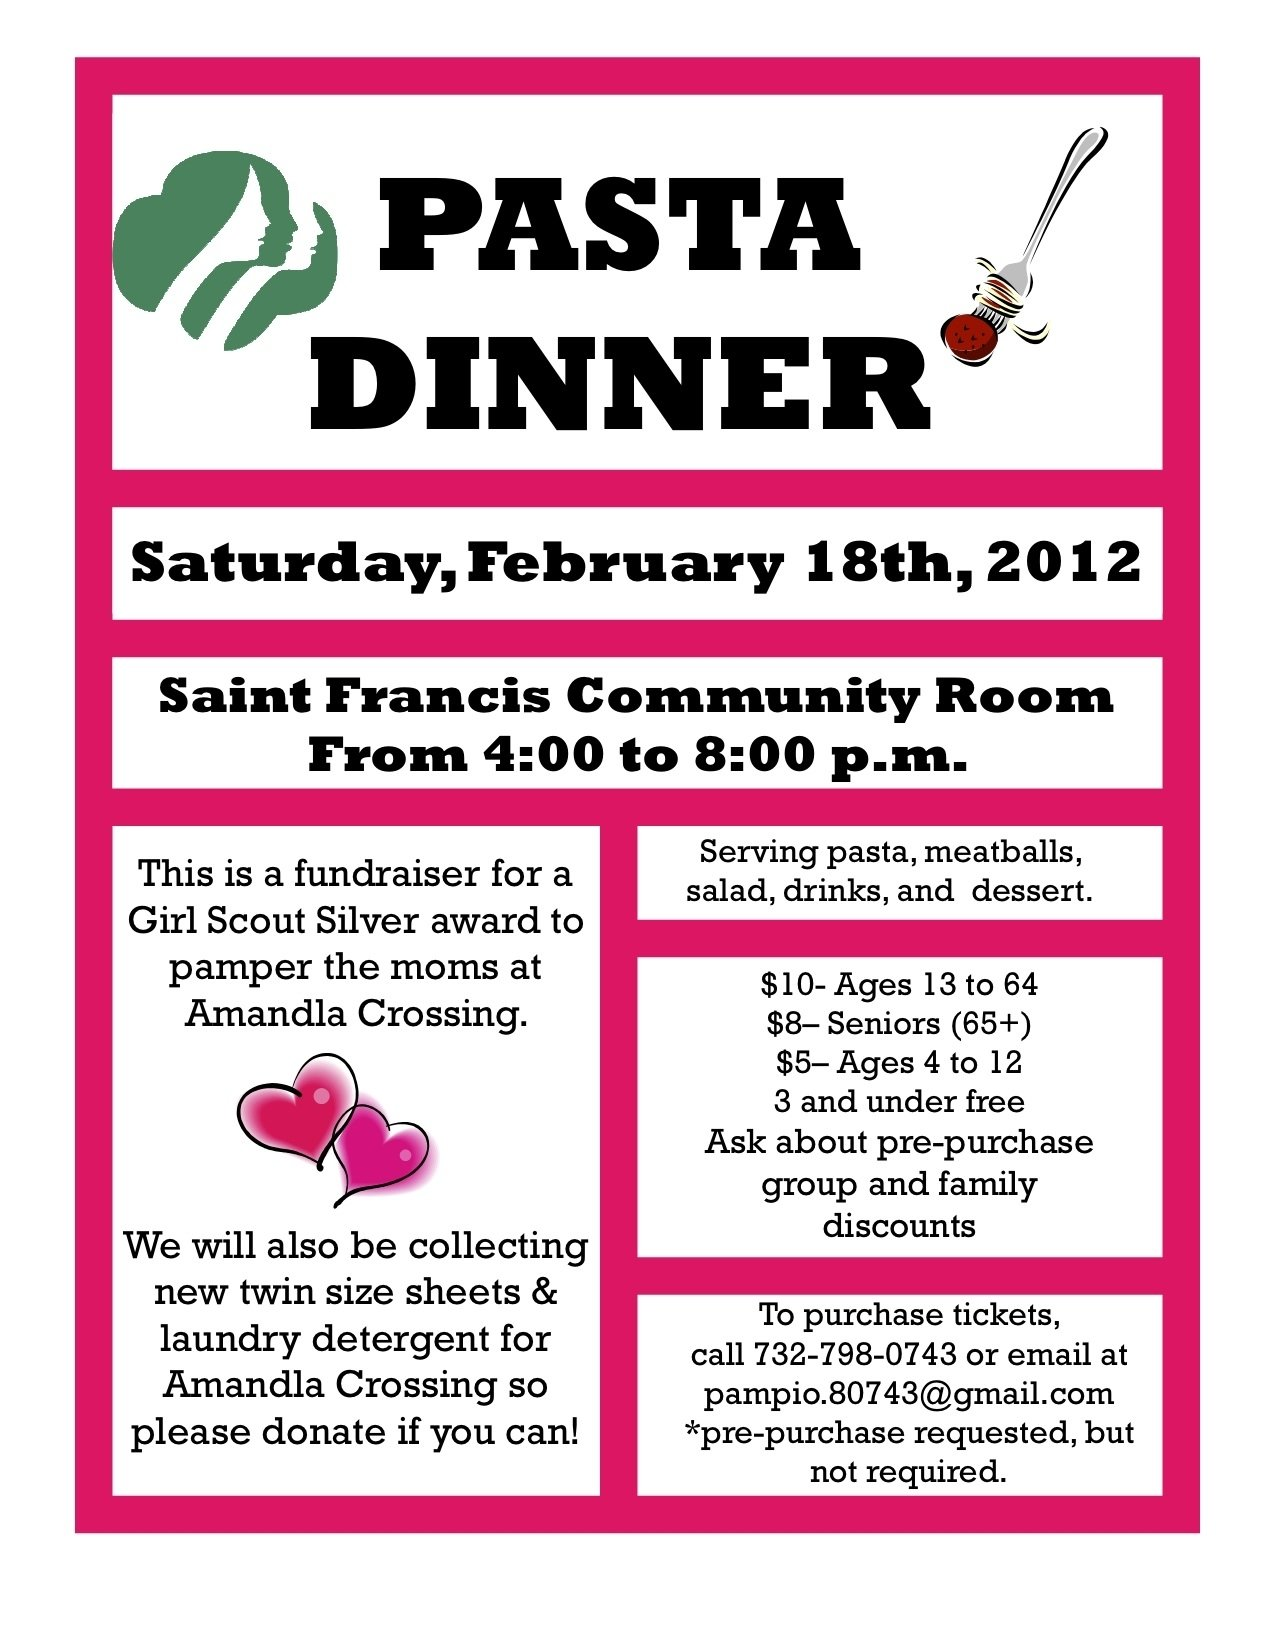 10 Awesome Girl Scouts Silver Award Ideas pasta dinner to support girl scout silver award february 18th 2021